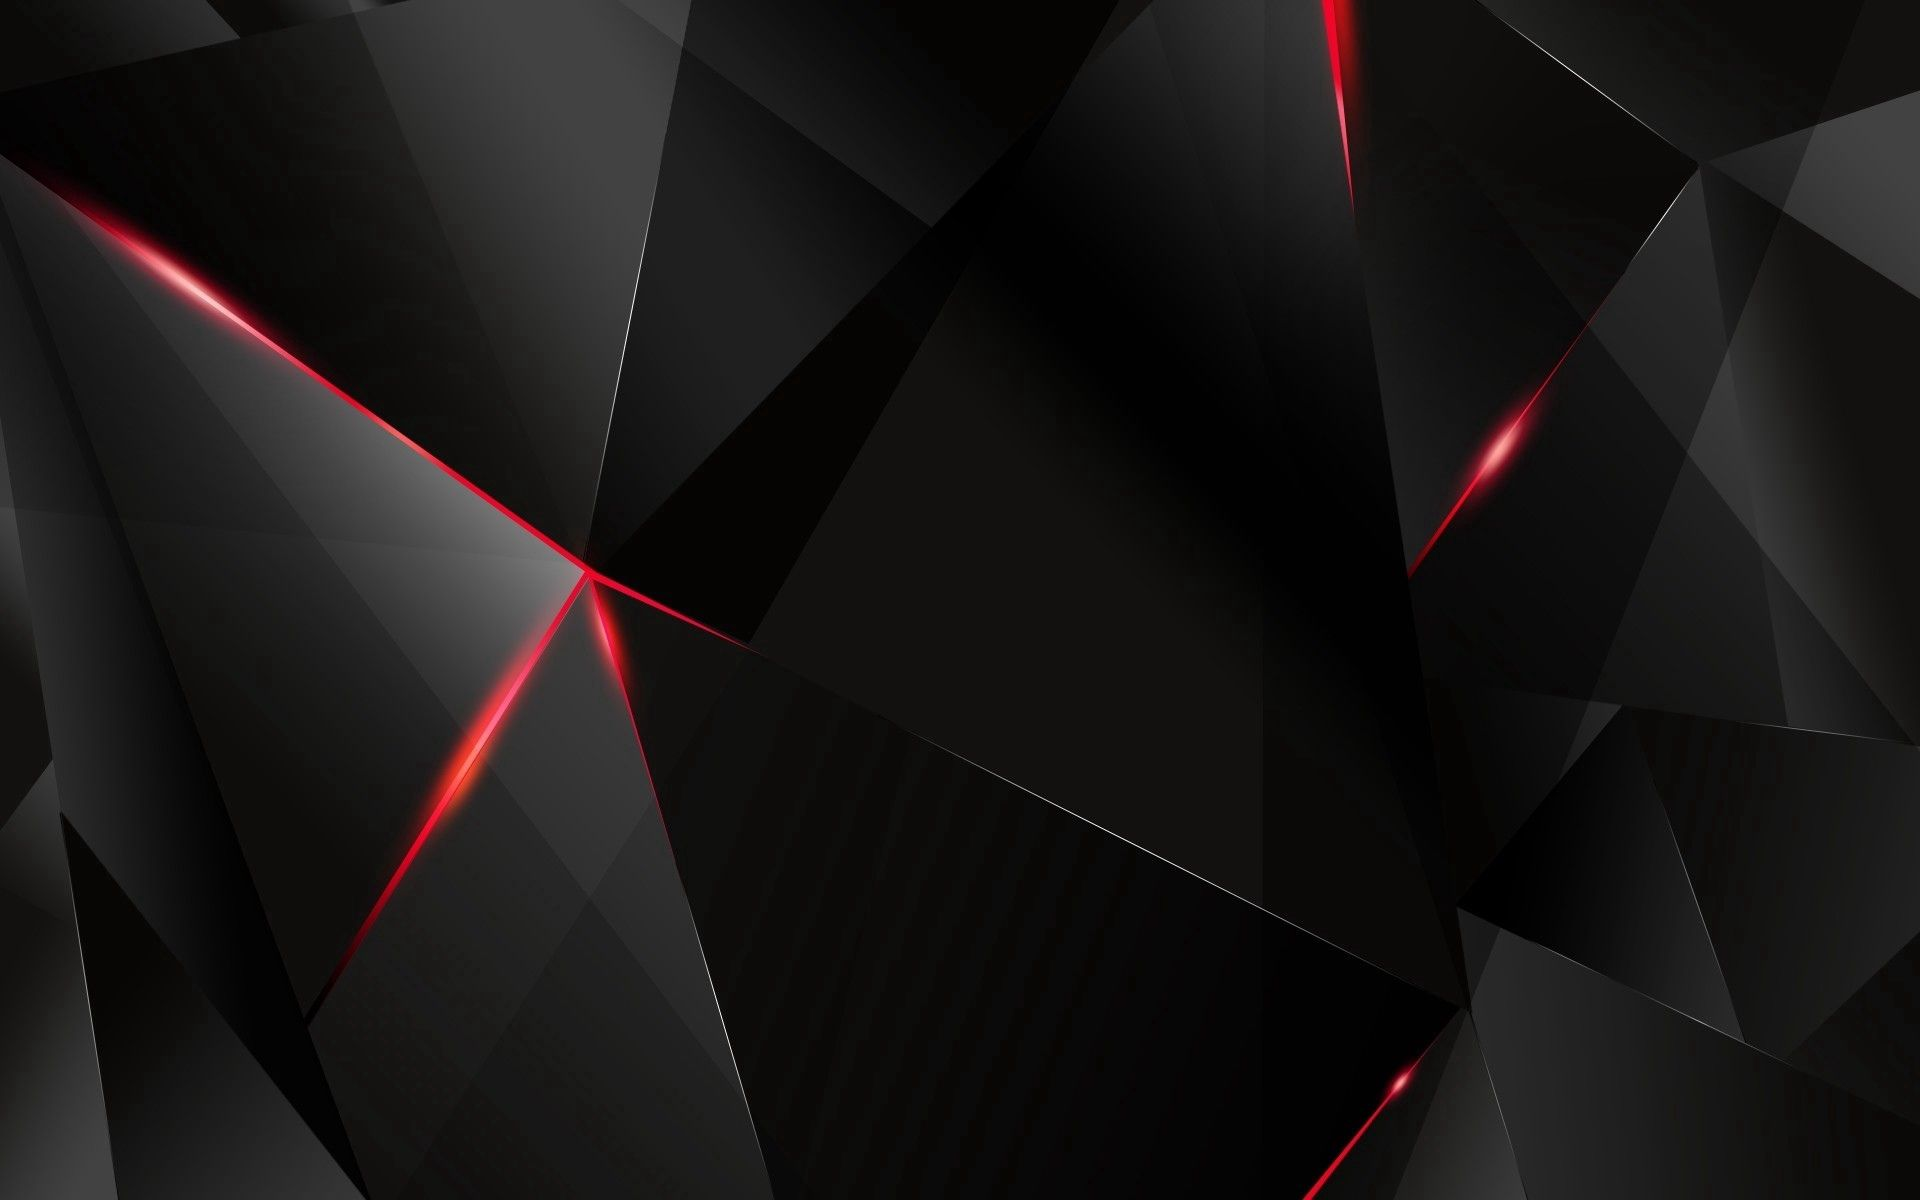 60136 download wallpaper Abstract, Dark, Shine, Light, Figurines, Figures screensavers and pictures for free